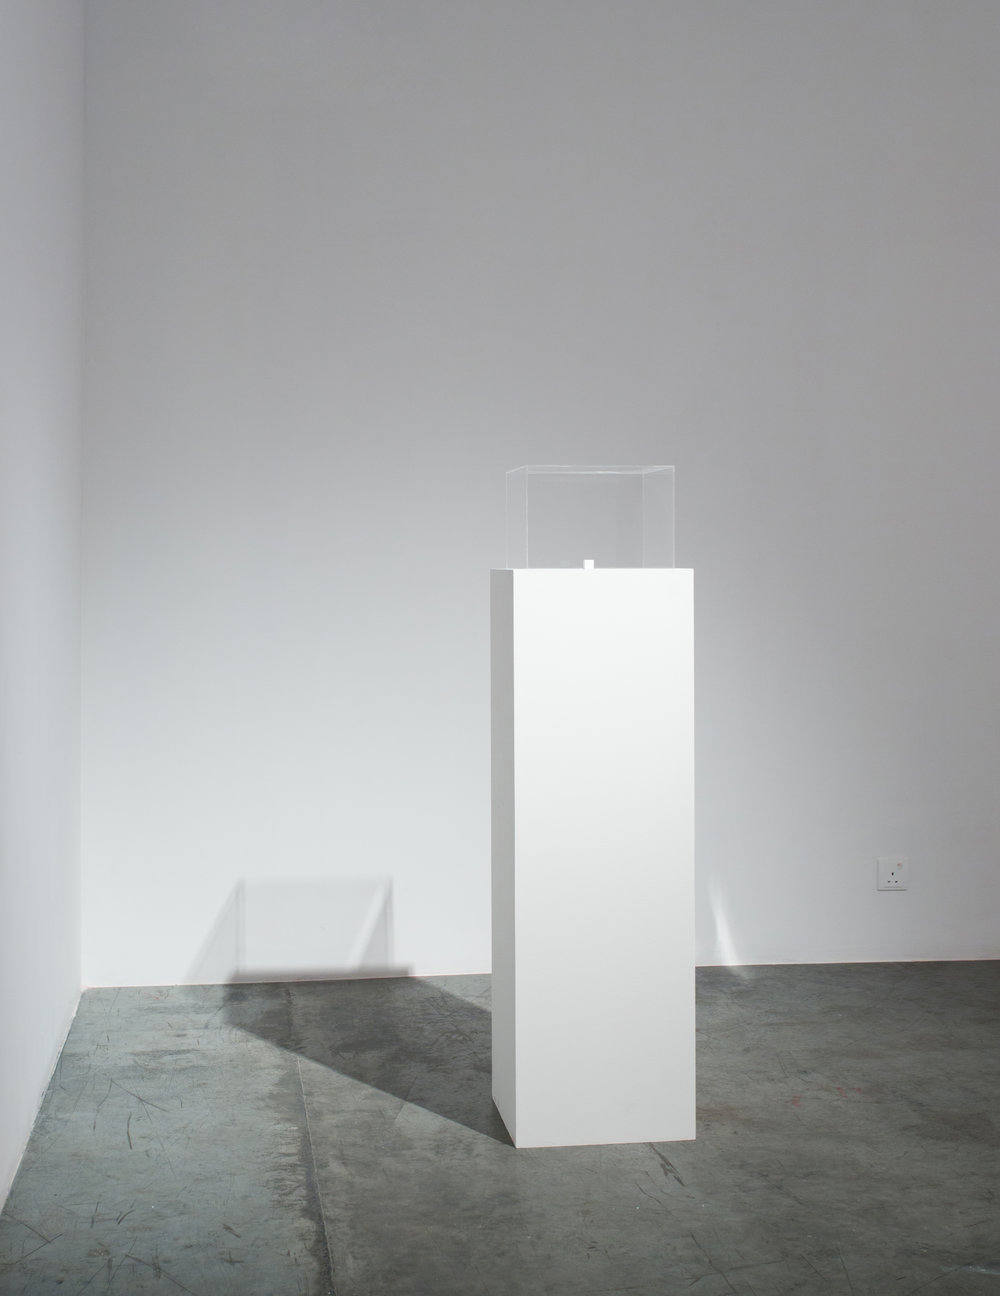 Charbel-joseph H. Boutros  1 cm3 of infinite darkness 2013 Steel polished mirrors, darkness, wood, white paint 1.8 x 1.8 x 1.8 cm Edition 1/3